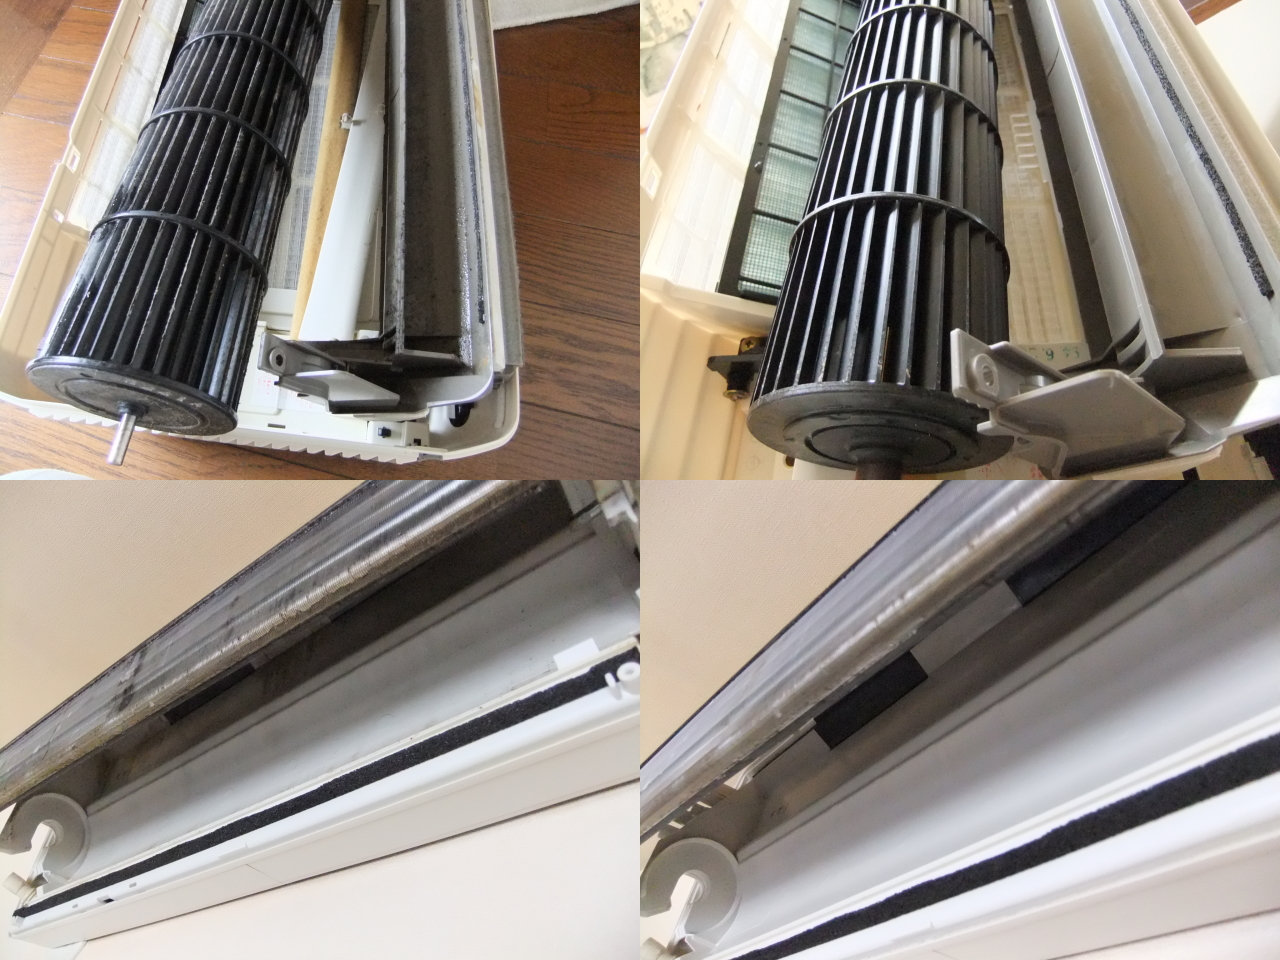 http://ajras.net/images/110704-aircon2.jpg